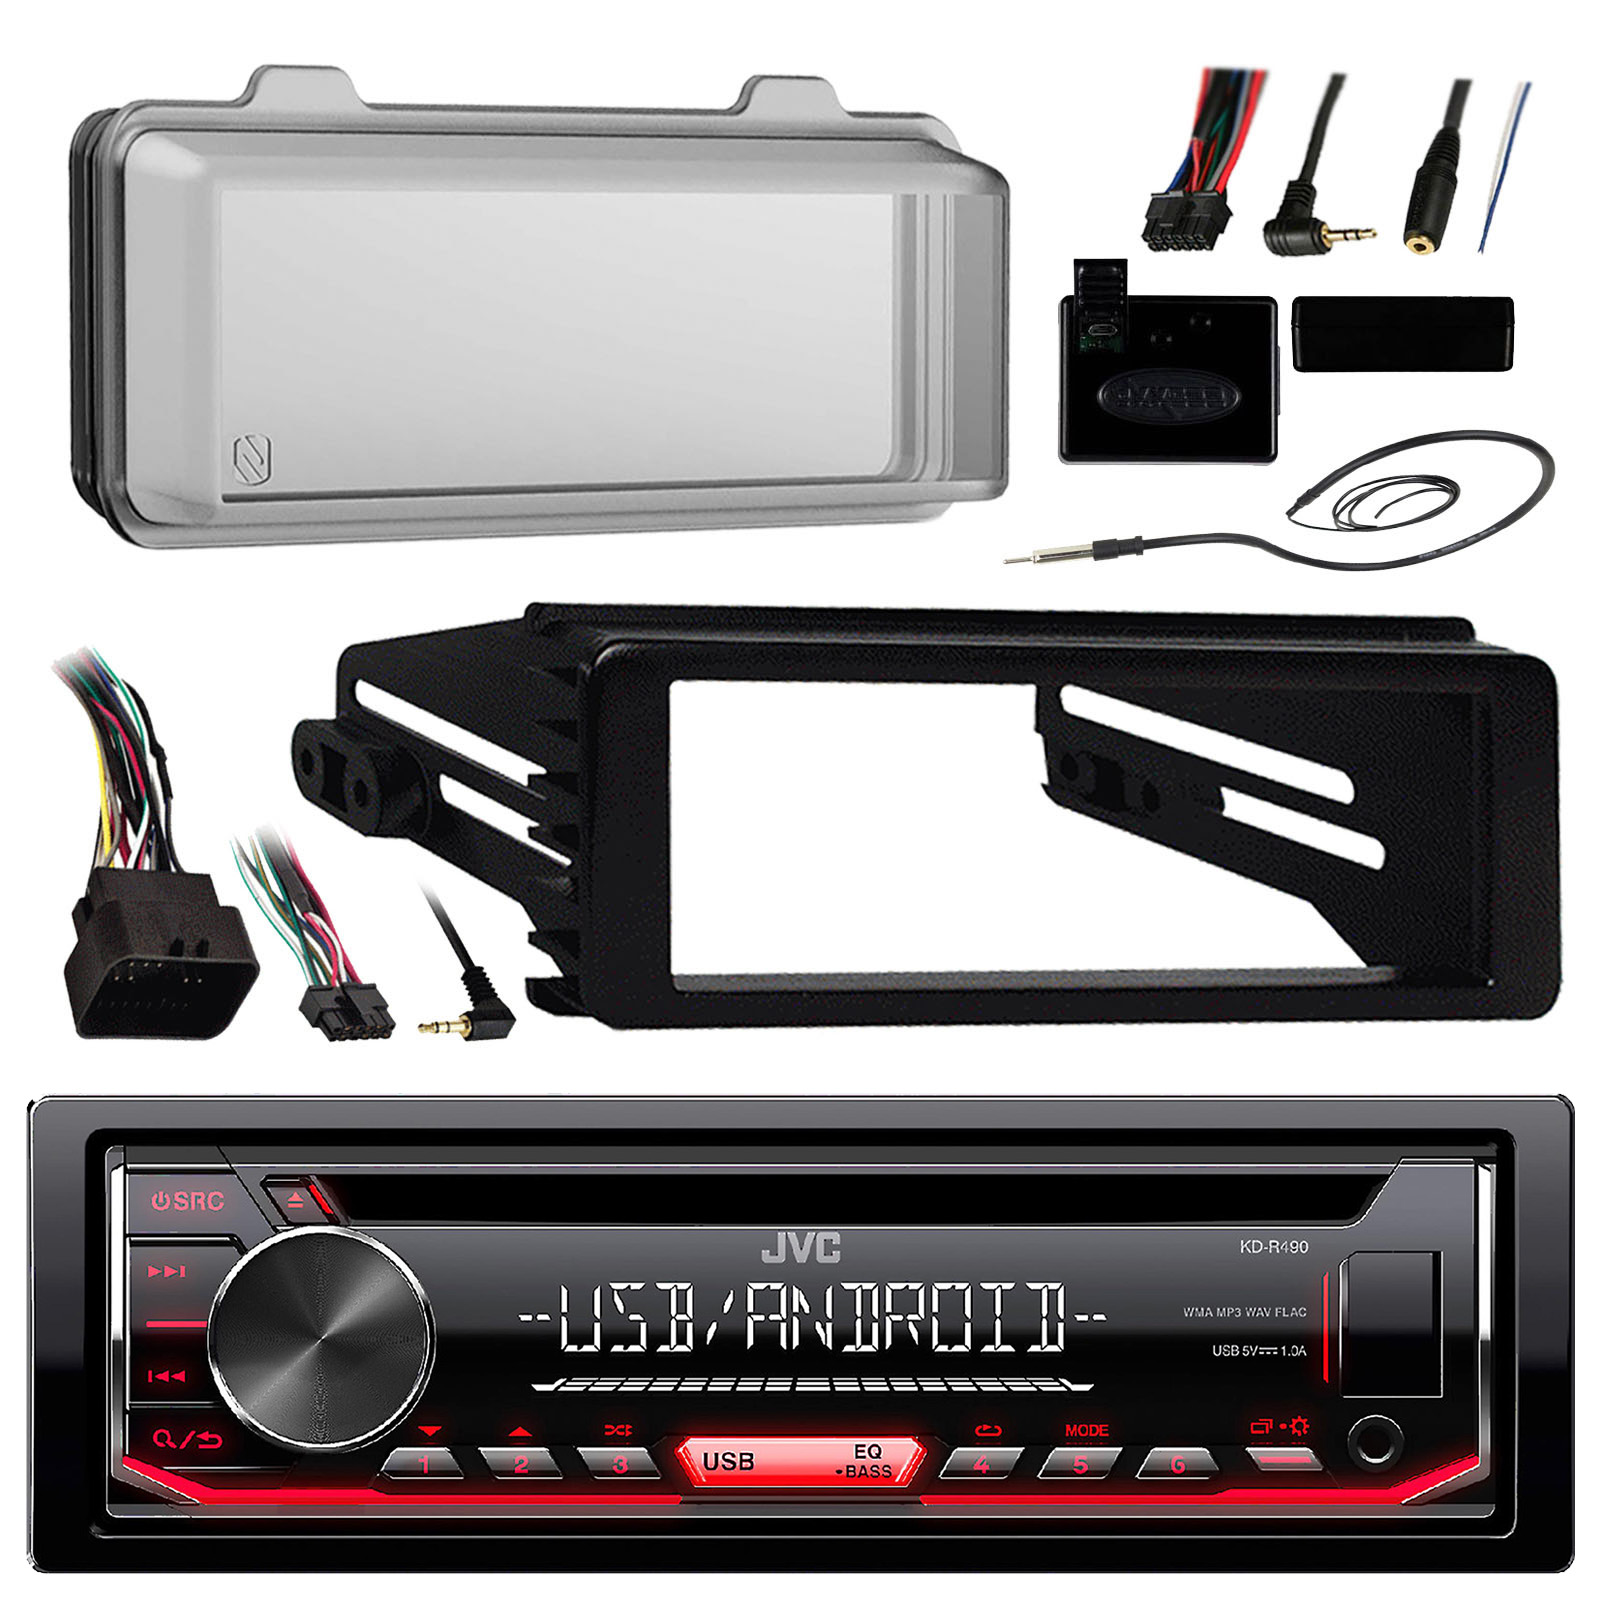 Details about KDR490 JVC Radio, 98-13 Harley Install Adapter Kit, Antenna,  Radio Cover